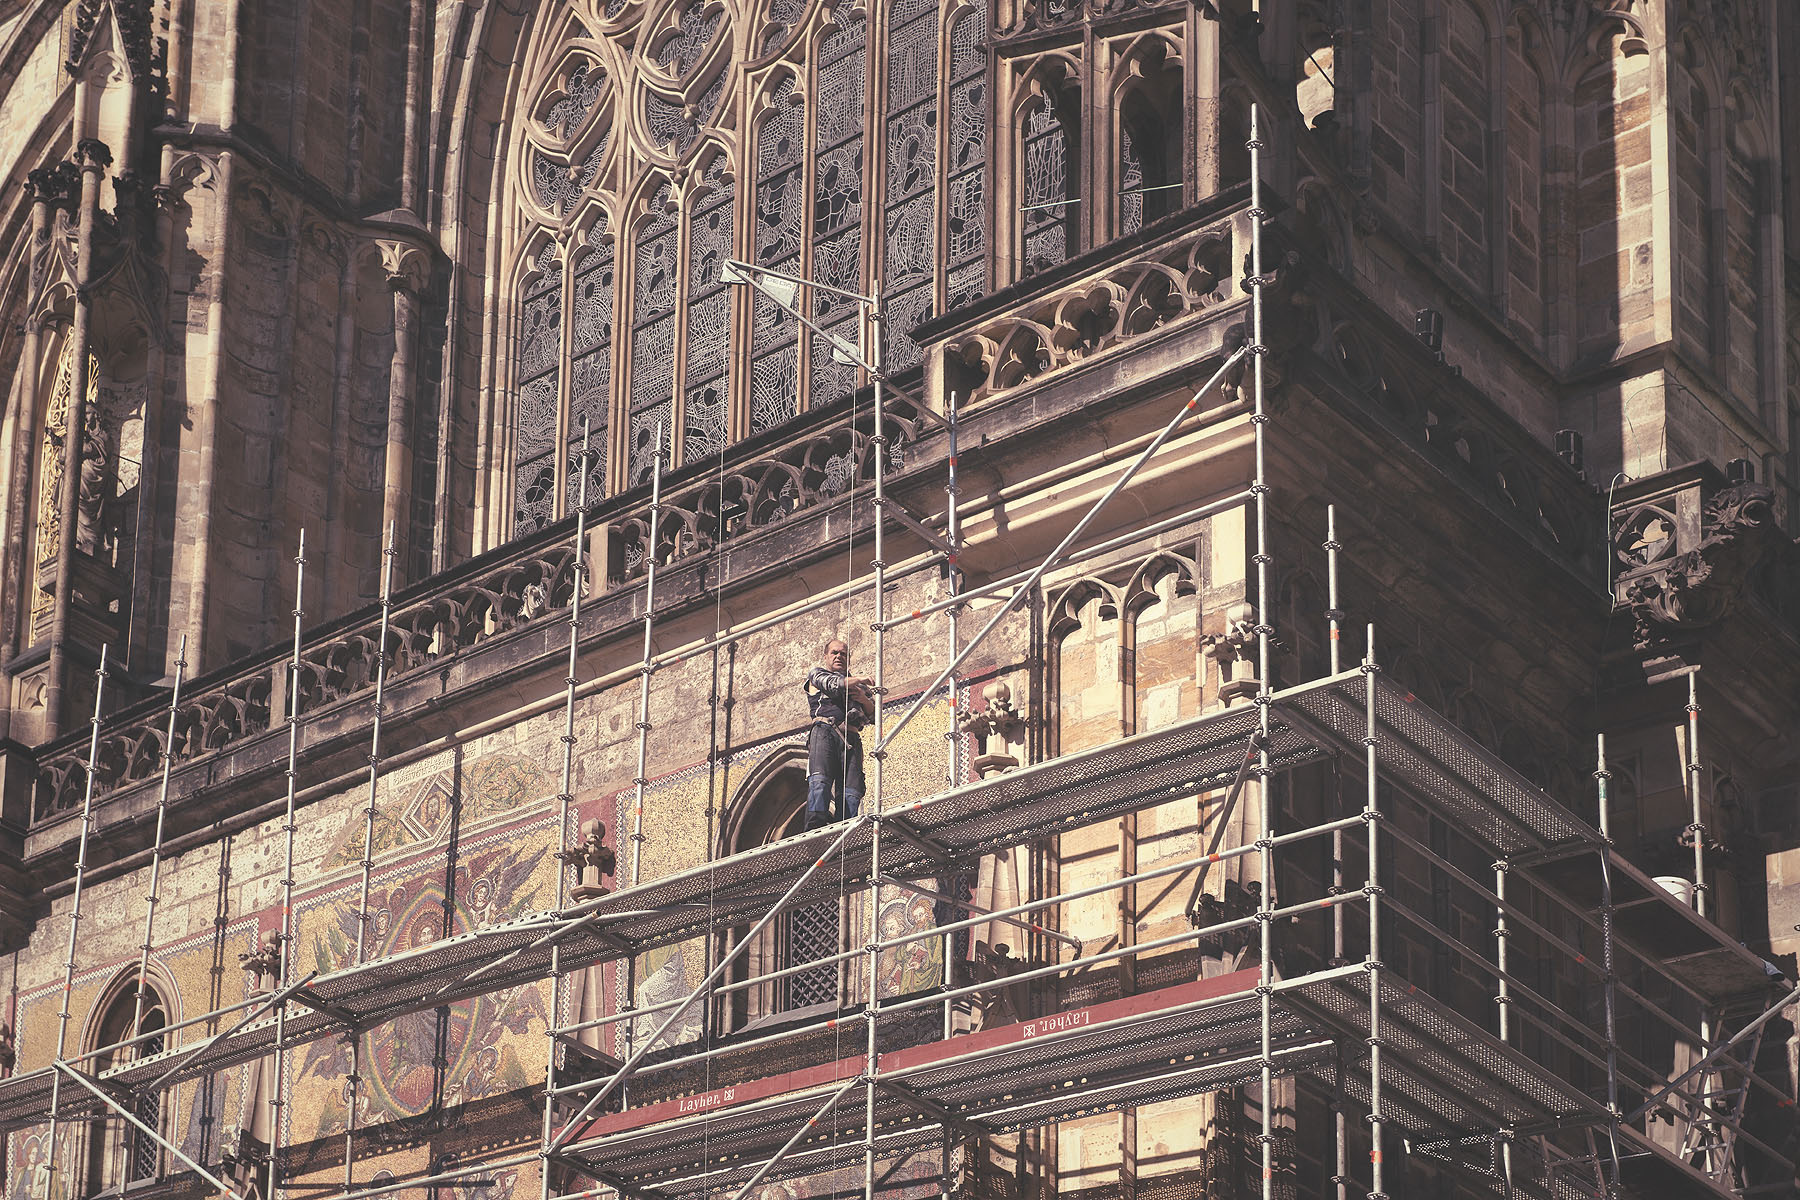 Restoration of St. Vitus Cathedral